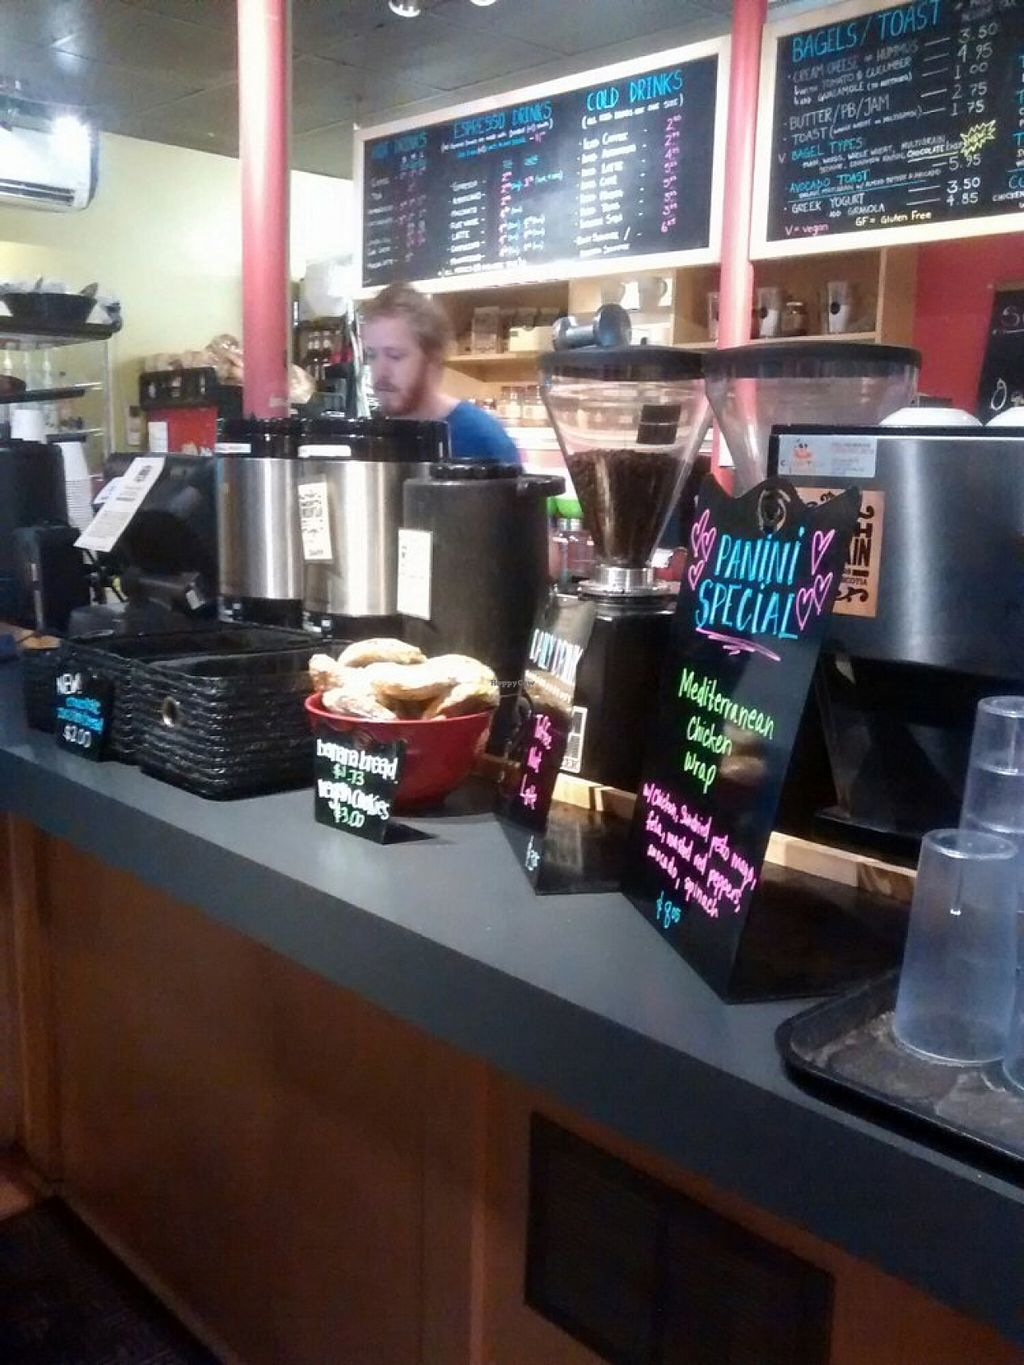 """Photo of Coburg Cafe  by <a href=""""/members/profile/QuothTheRaven"""">QuothTheRaven</a> <br/>Counter, vegan cookies.  <br/> October 2, 2015  - <a href='/contact/abuse/image/13089/119851'>Report</a>"""